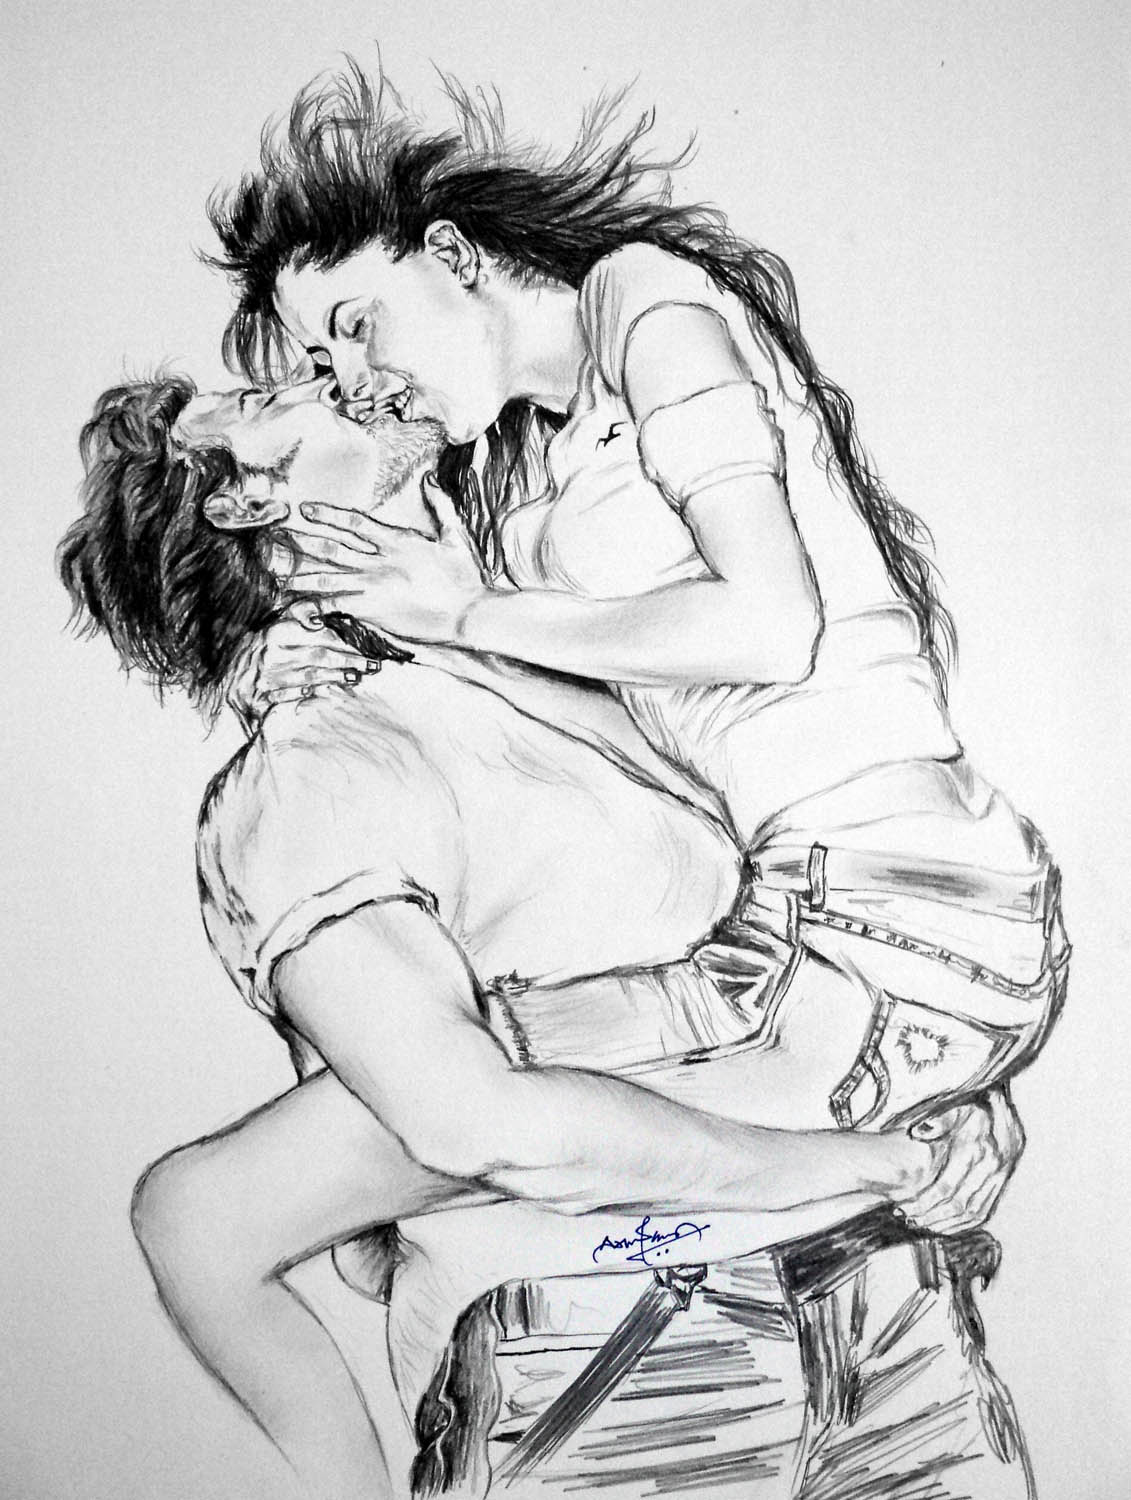 Kites pencil drawing sketch